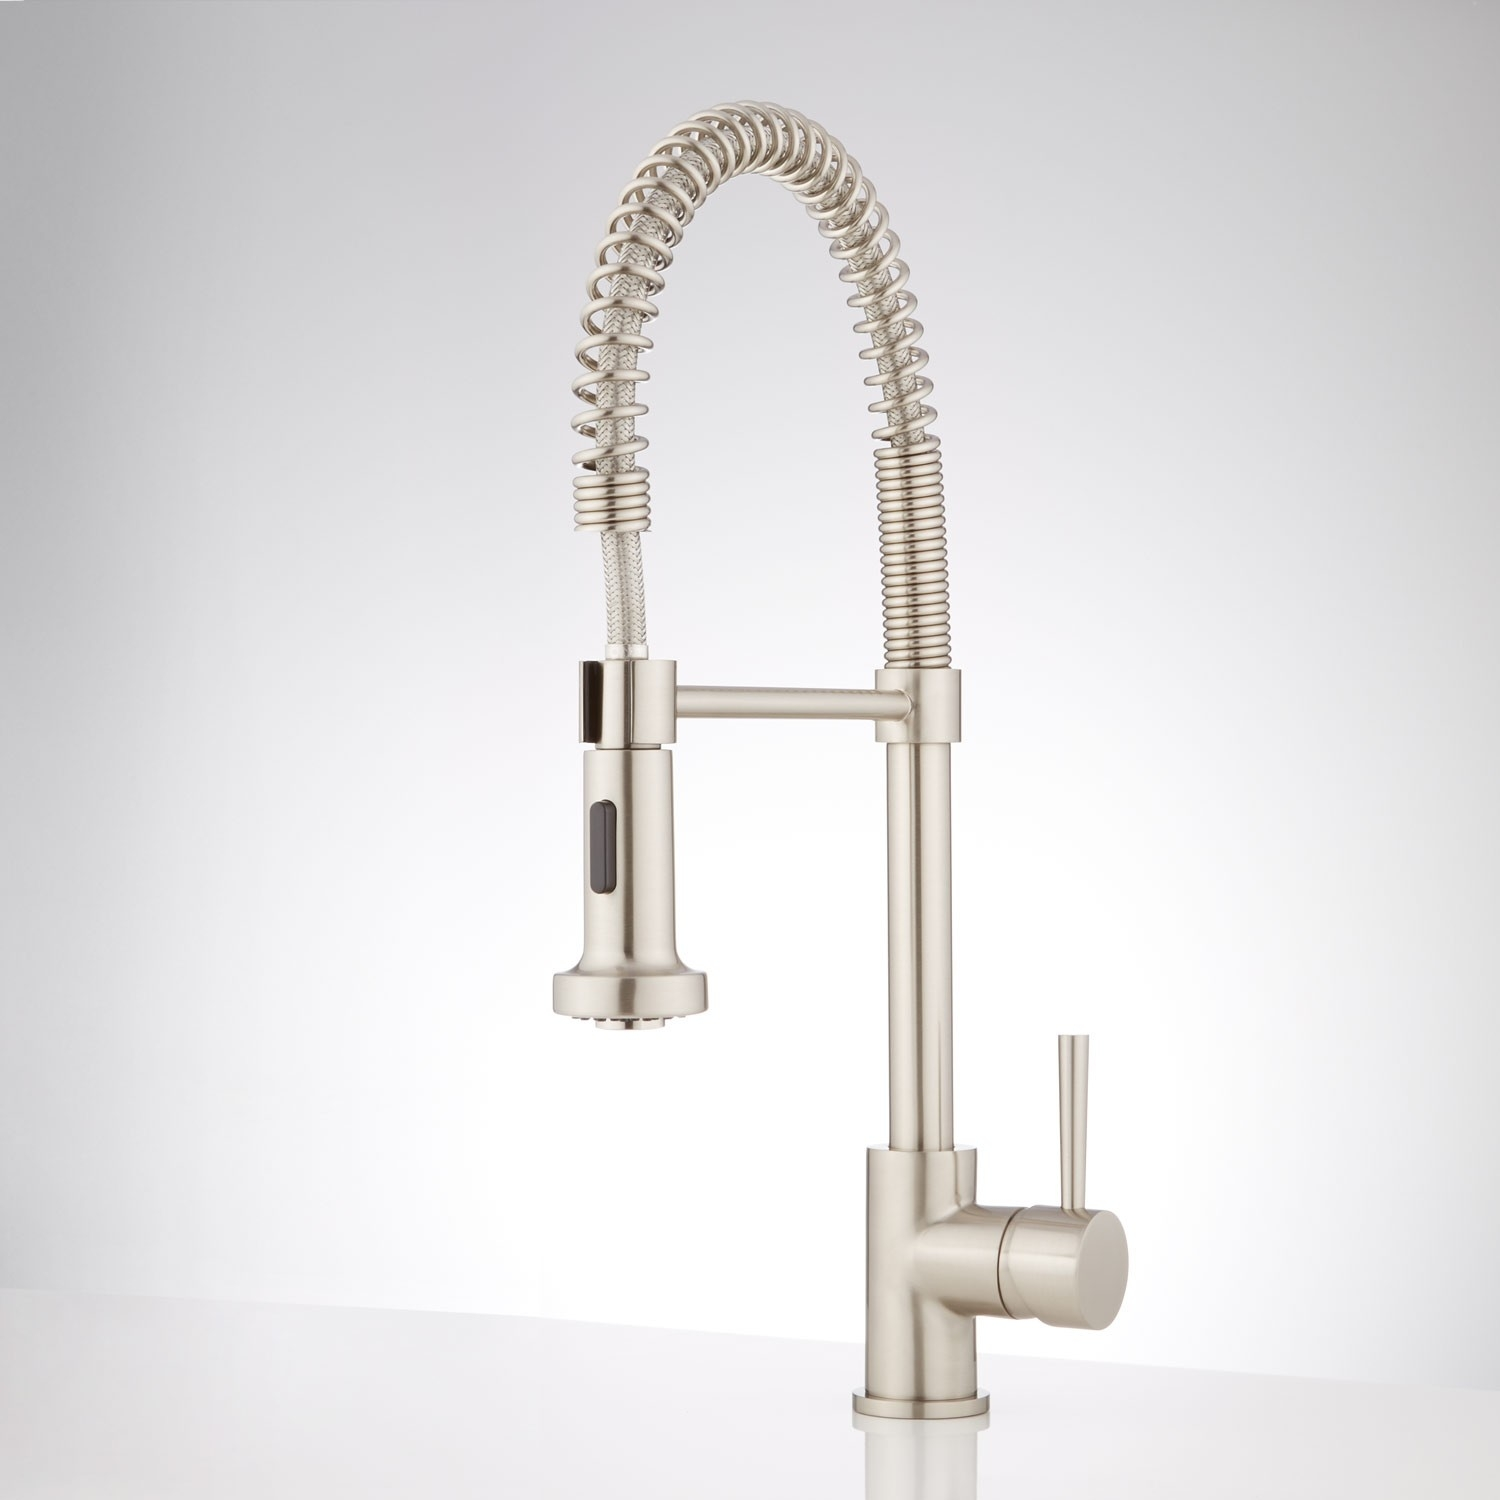 The constant dripping that keeps you awake at night is not as hard to fix as you might have thought. Kohler Coil Spring Faucet